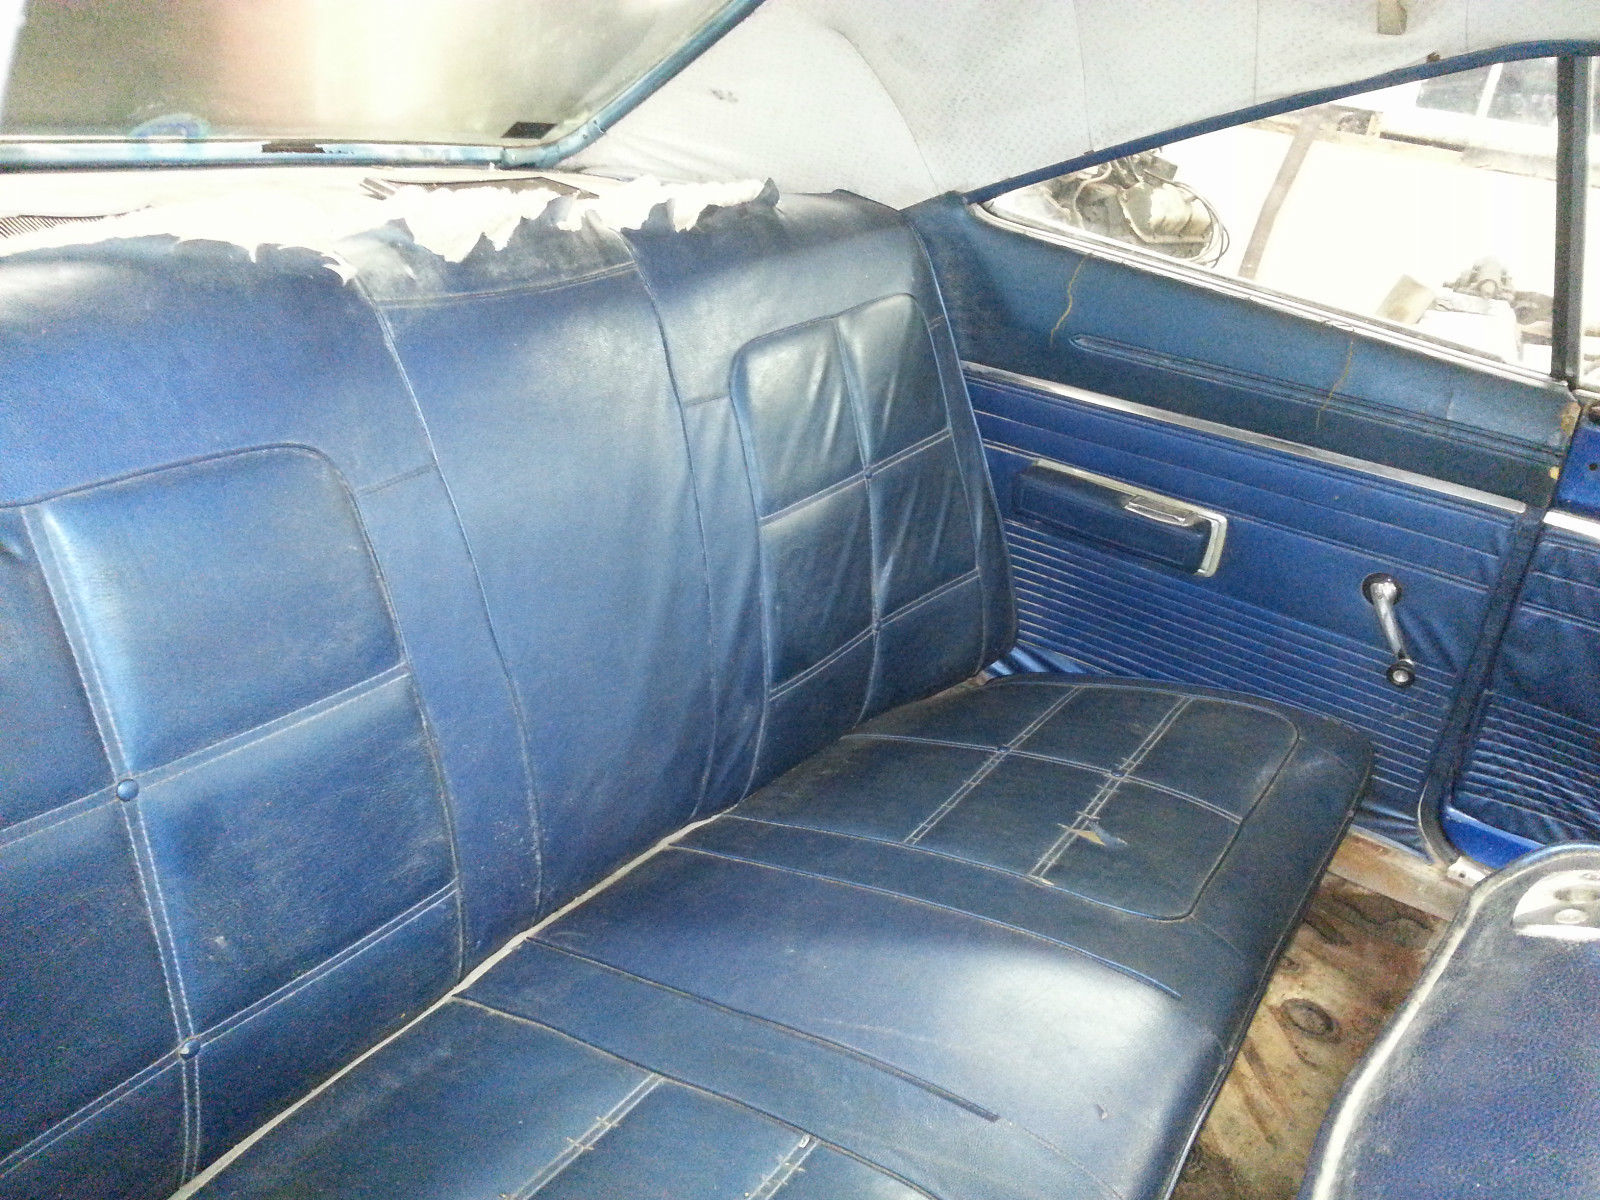 1968-Dodge-Charger-interior-2